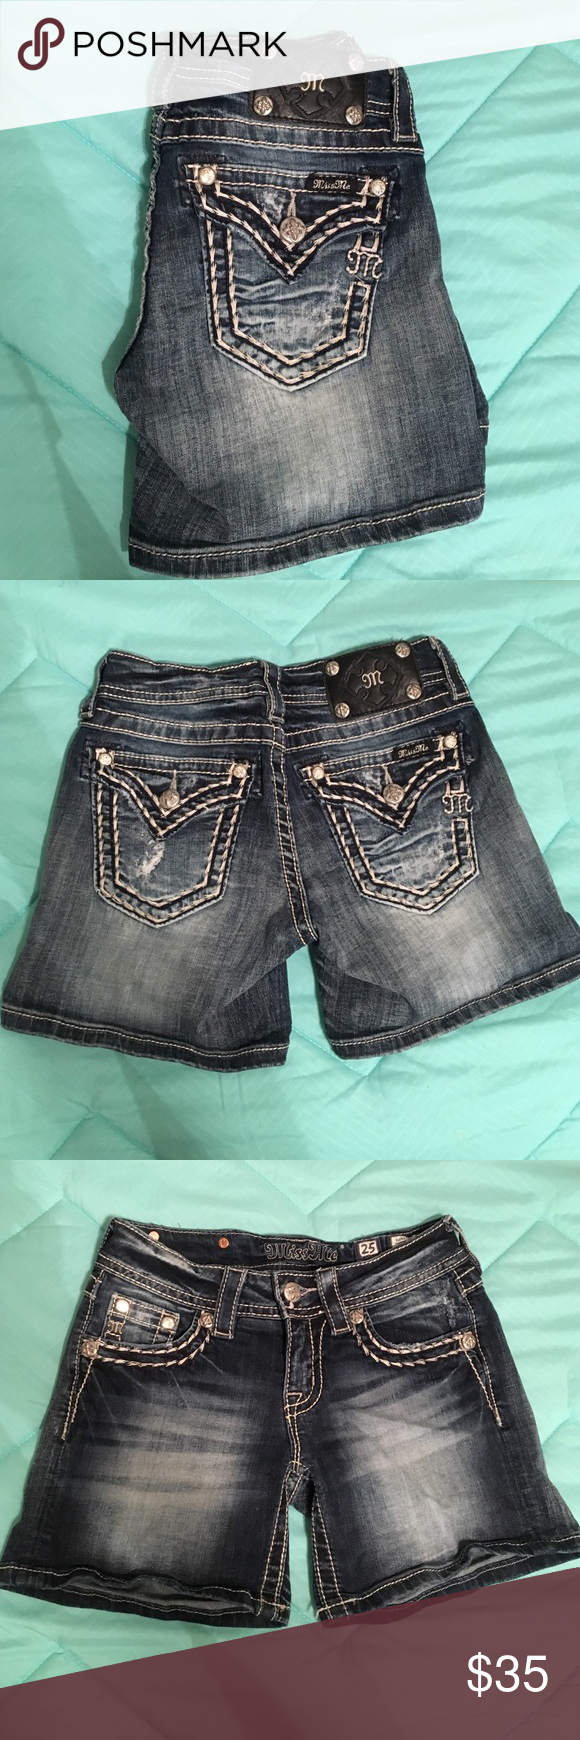 Miss Me jean shorts. Miss Me blue jean shorts with rhinestones and white stitching detail on the pockets. Miss Me Shorts Jean Shorts